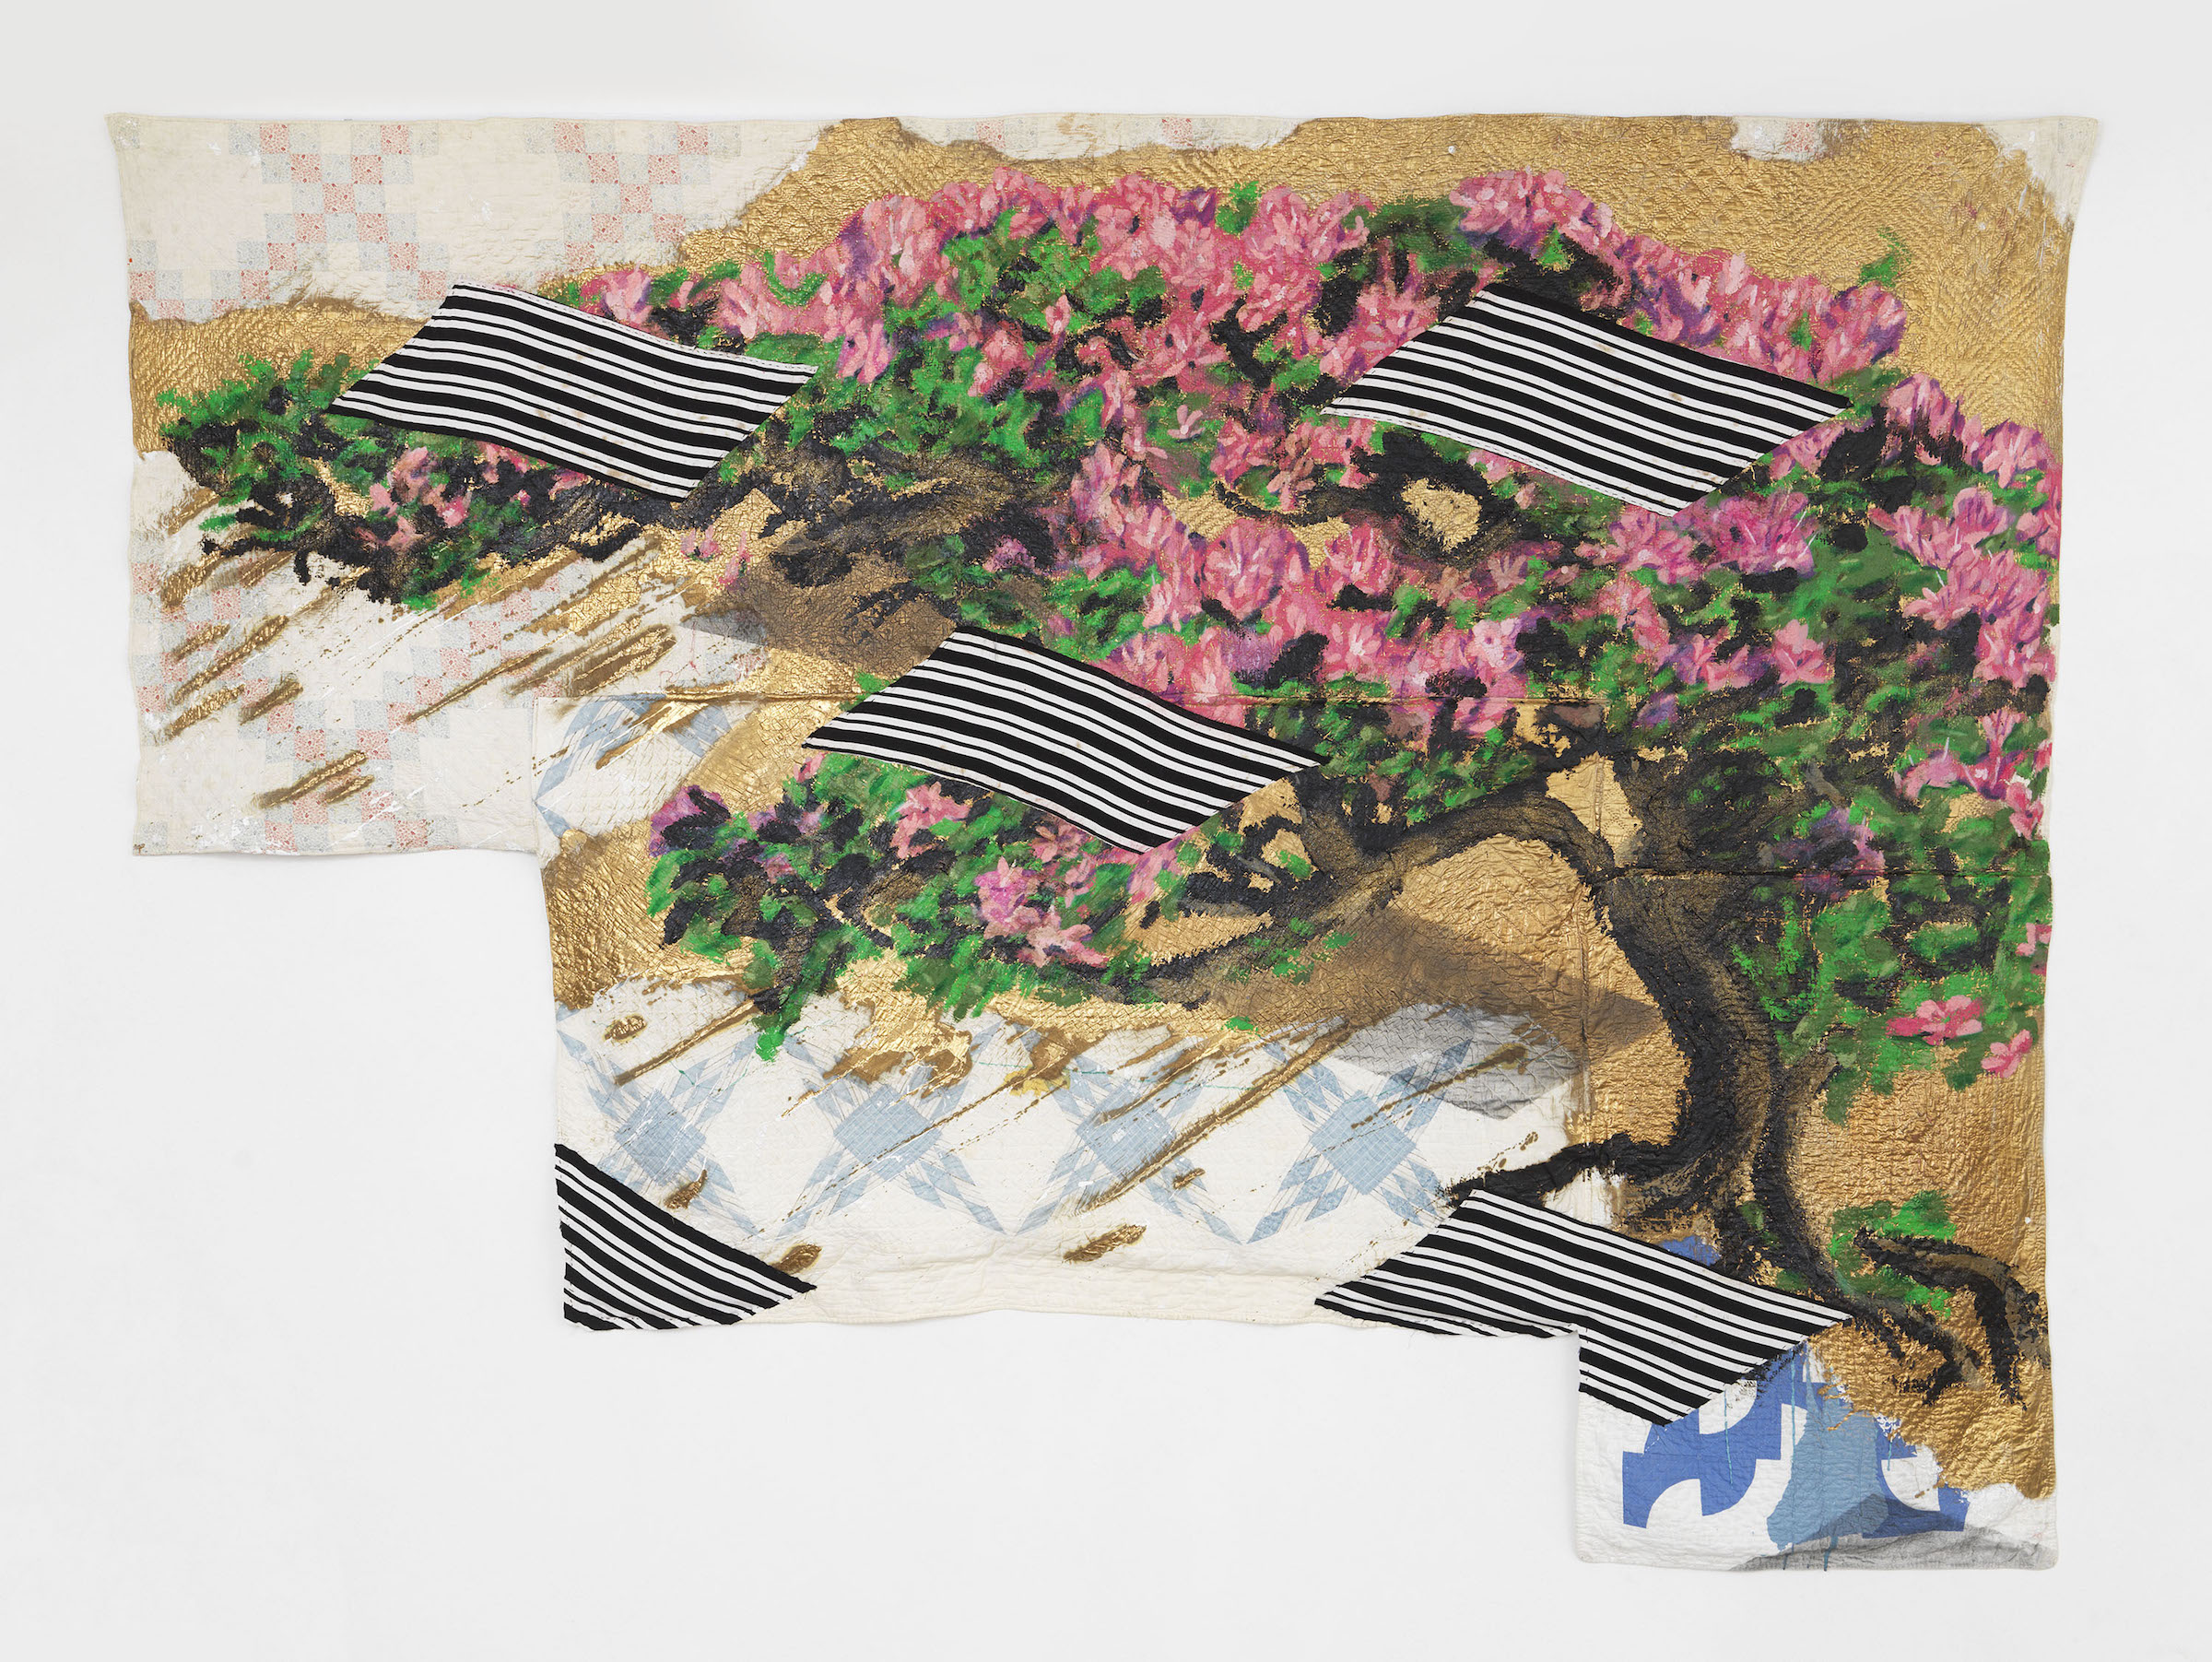 quilt by sanford biggers, with bottom left corner cut out'; image of bonsai tree on the quilt, interspersed with striped fabric pieces